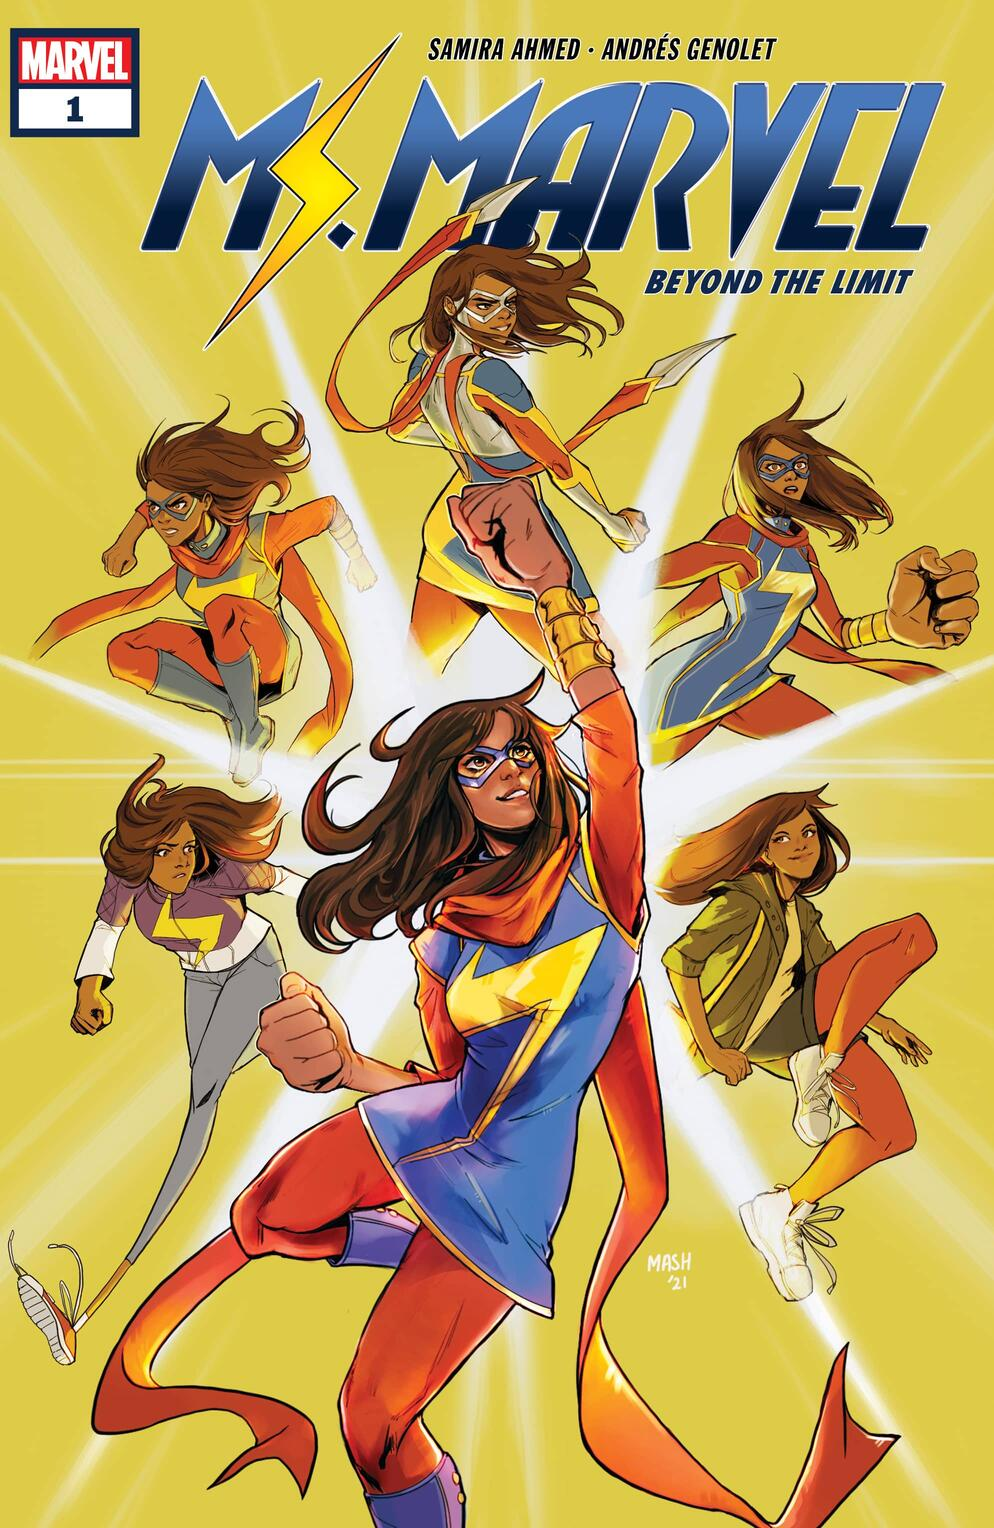 Ms.-Marvel-Beyond-the-Limit-1-A Ms.-Marvel-Beyond-the-Limit-1-A